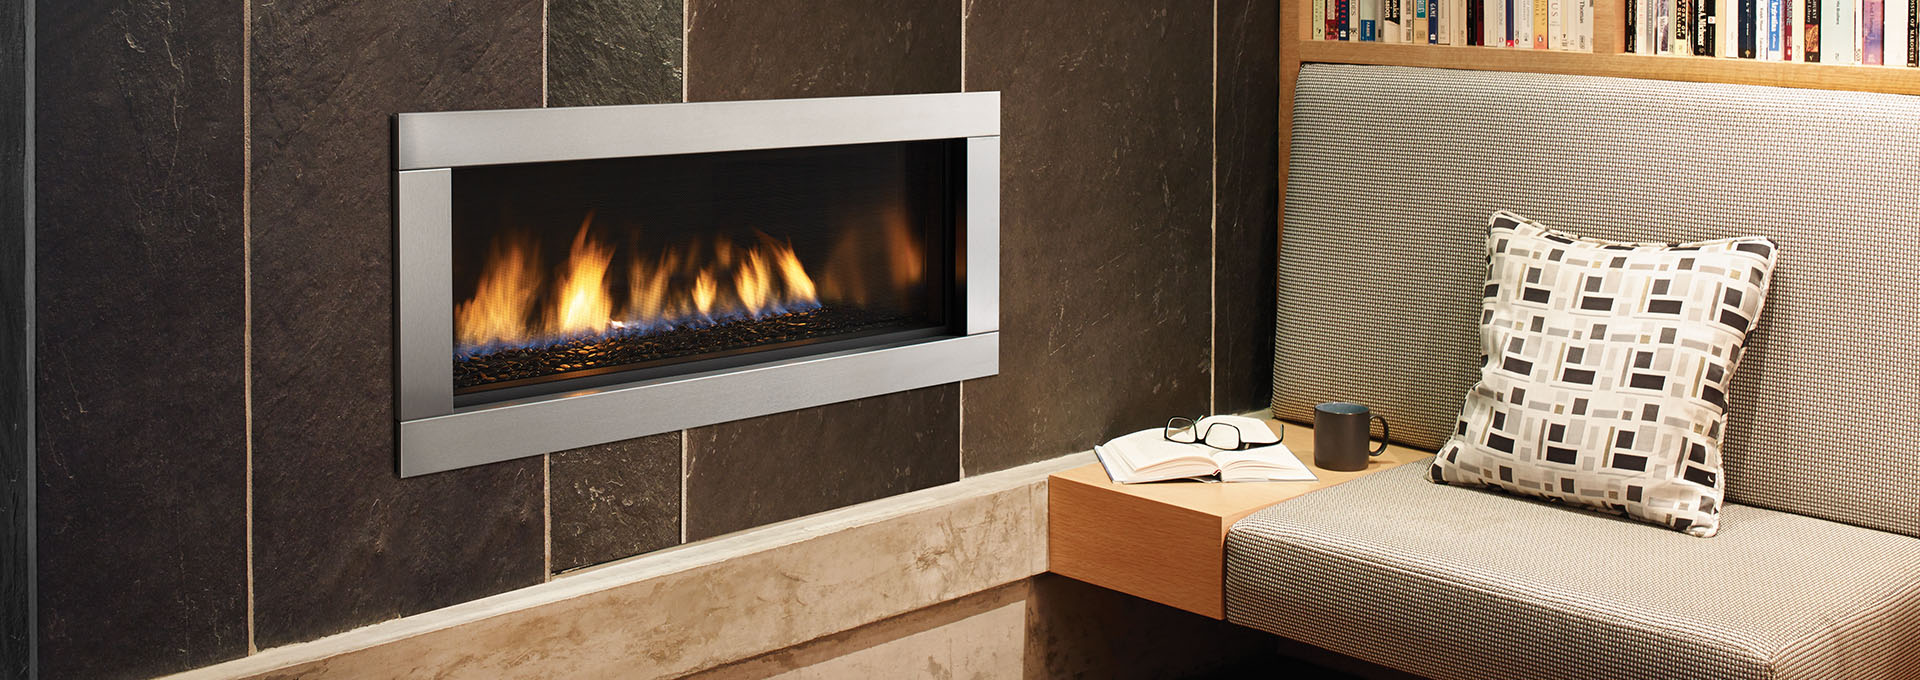 regency horizon hz30e gas fireplace contemporary u0026 modern gas